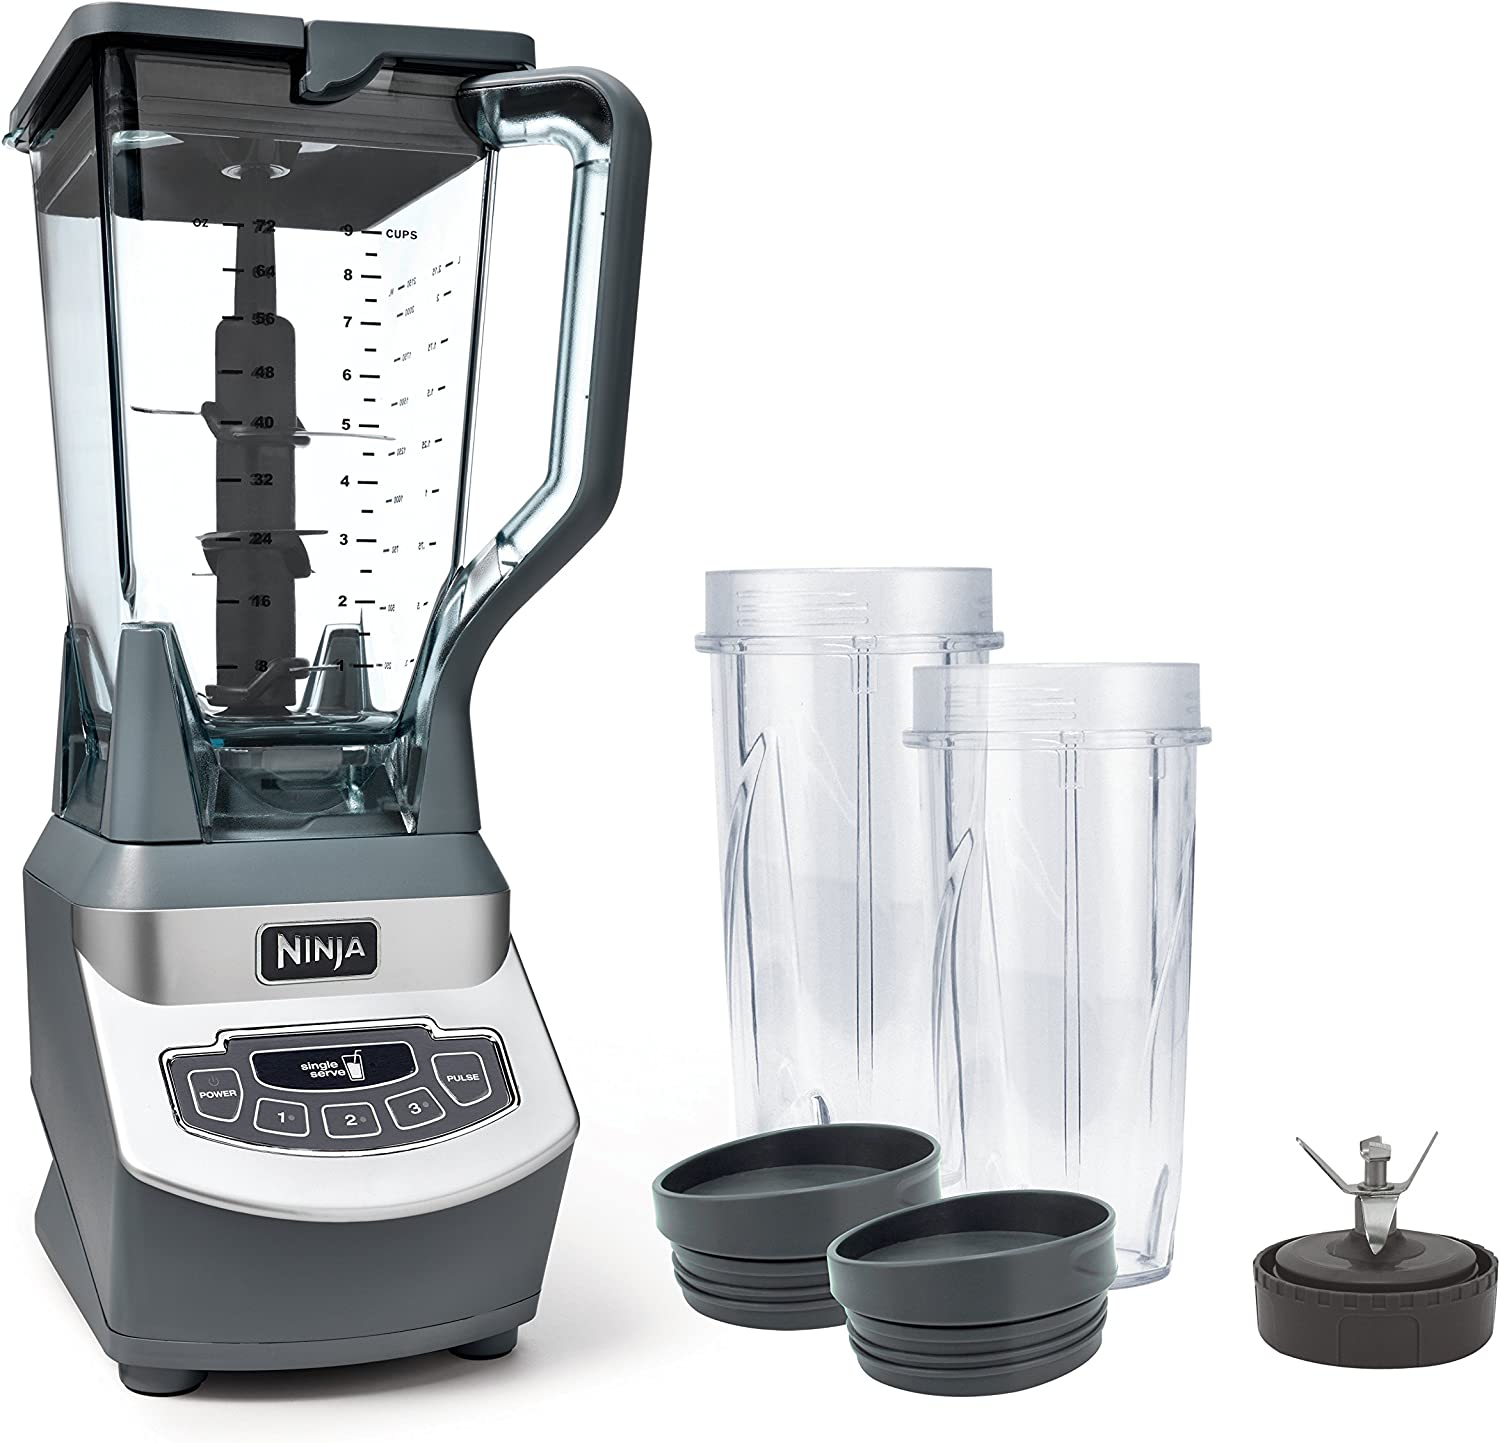 Ninja Professional Countertop Blender for Indian Cooking